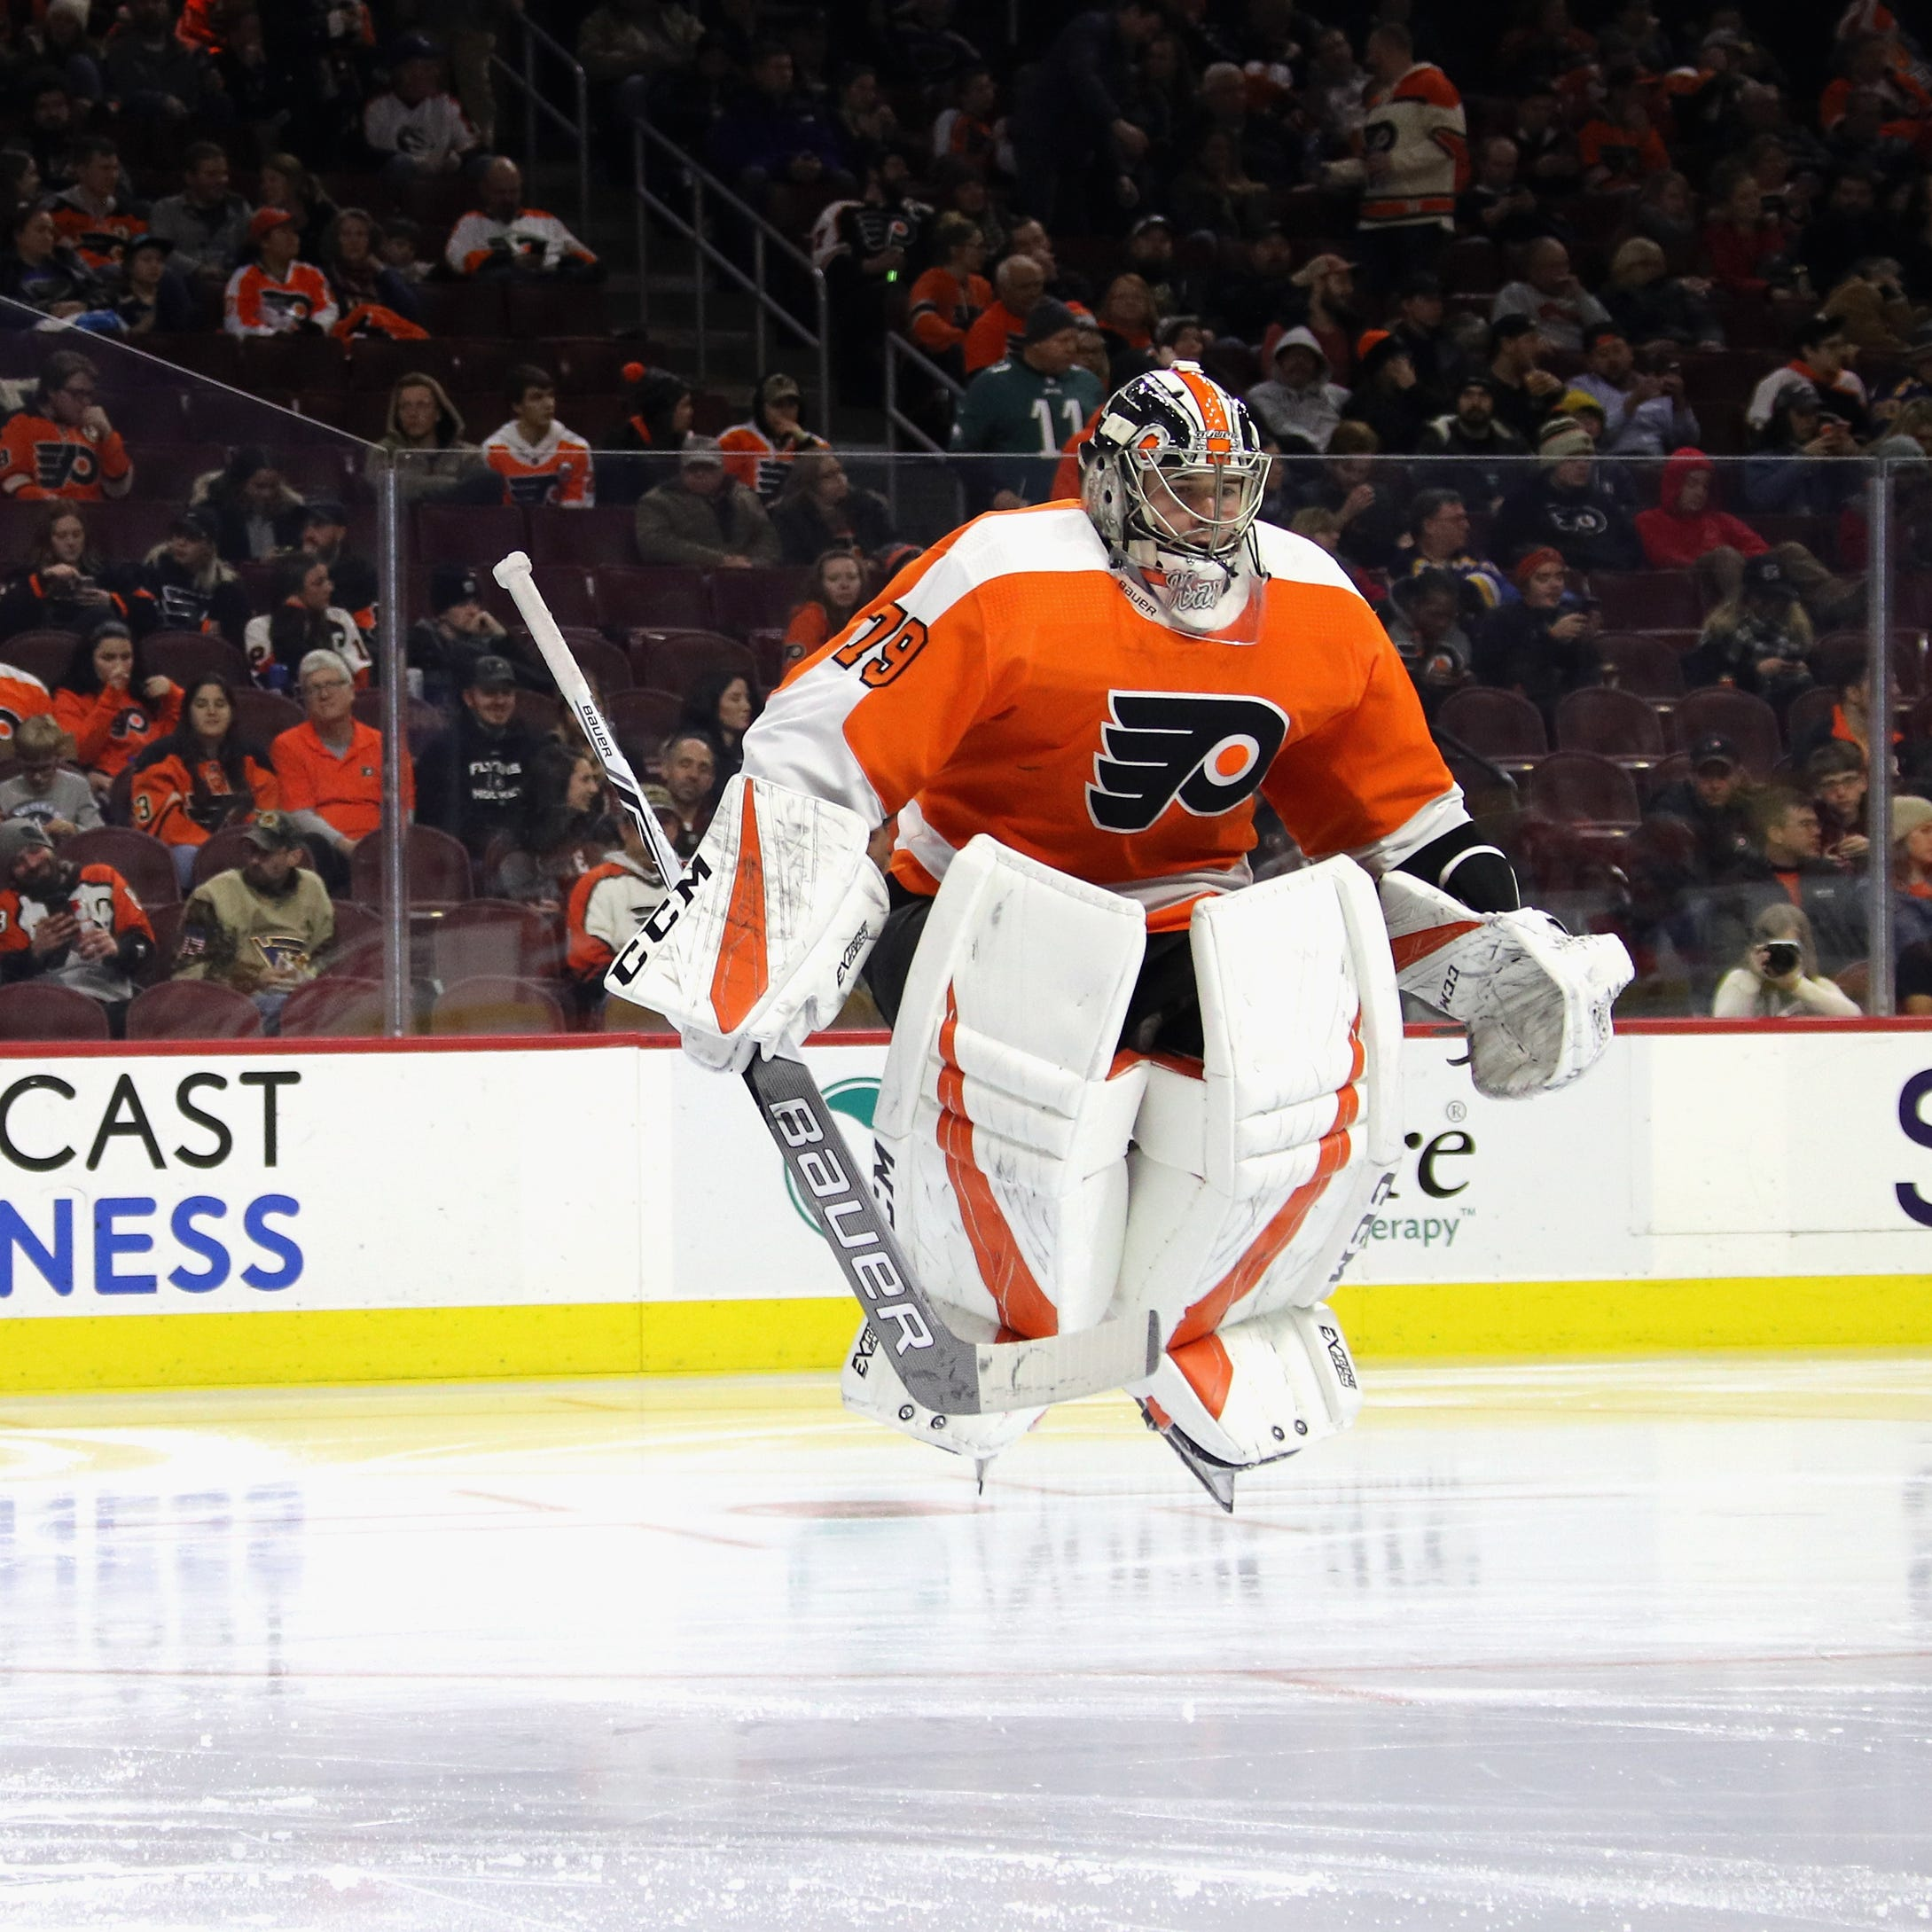 Carter Hart made the jump and his teammates want him to stay in the NHL